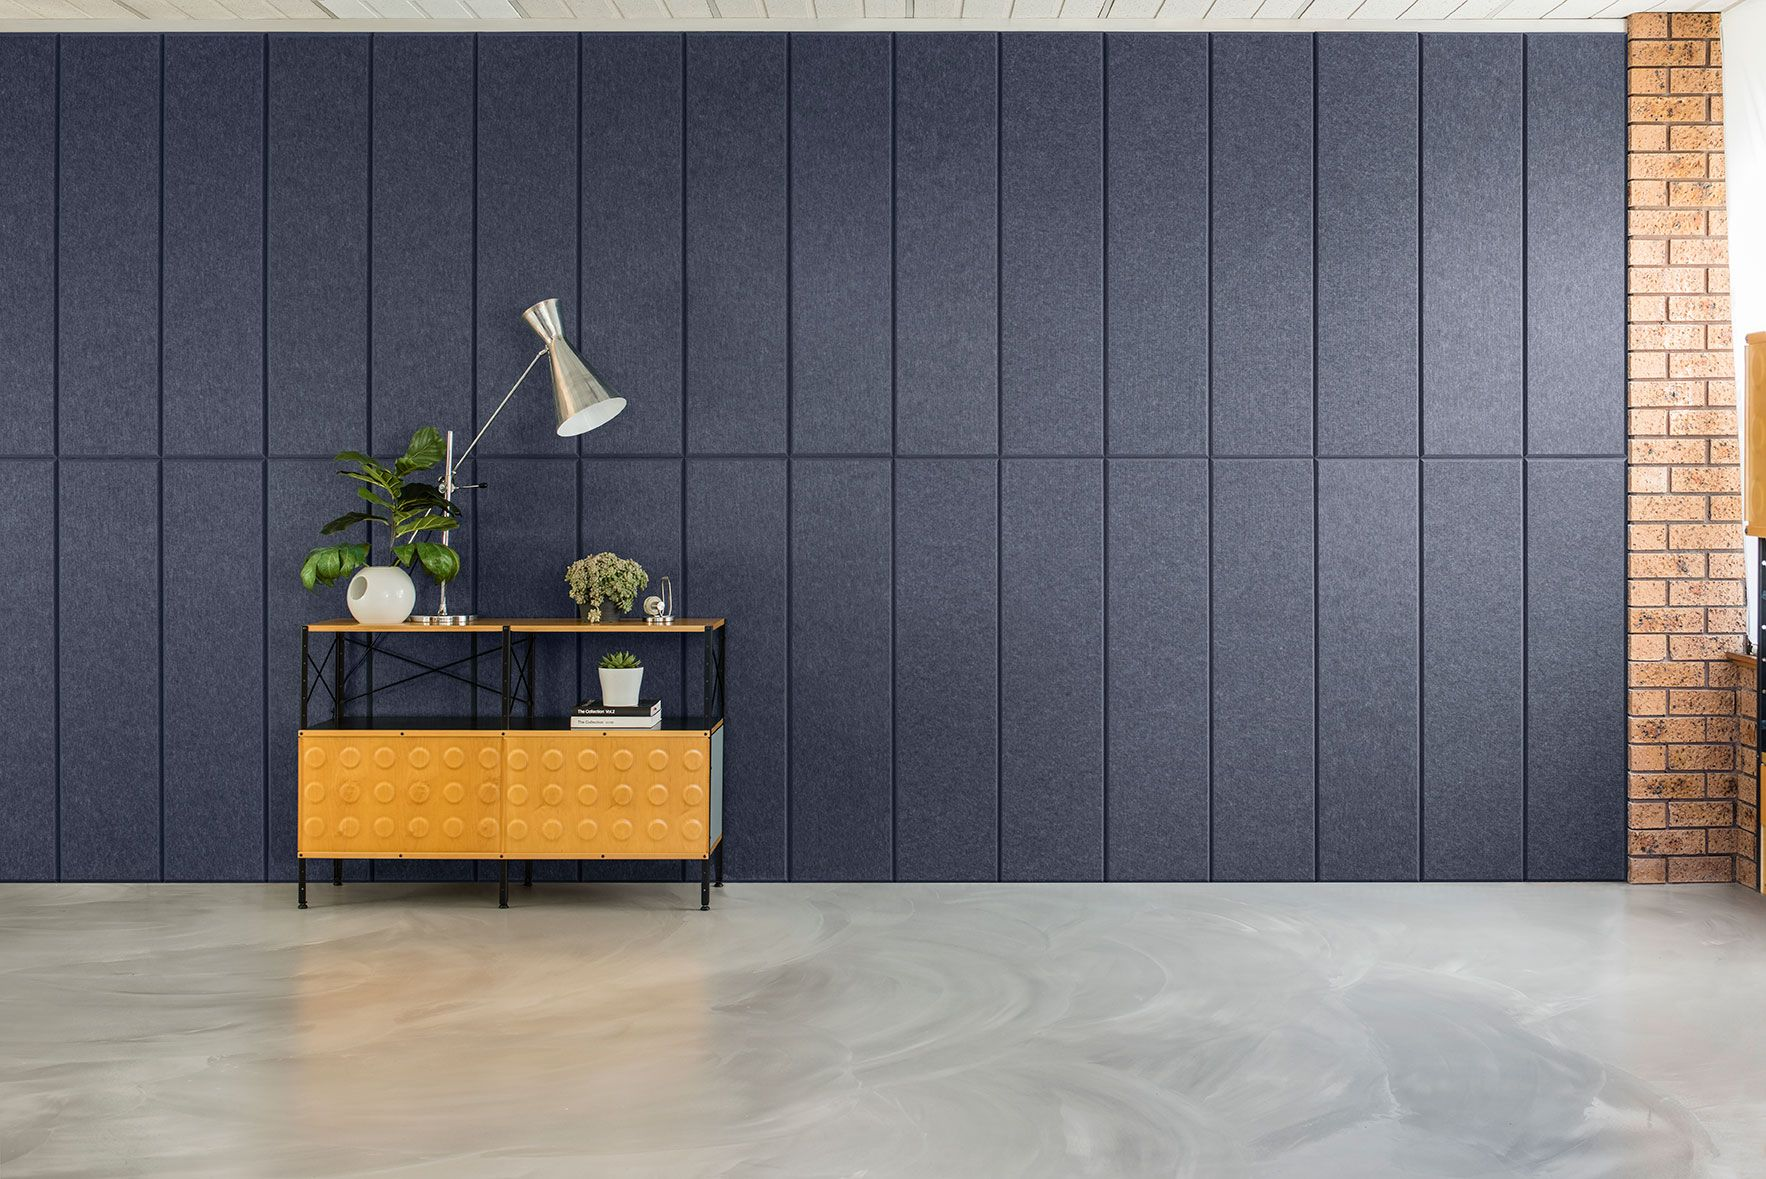 Echopanel Acoustic Tile From The Balance Range, Peel And Stick